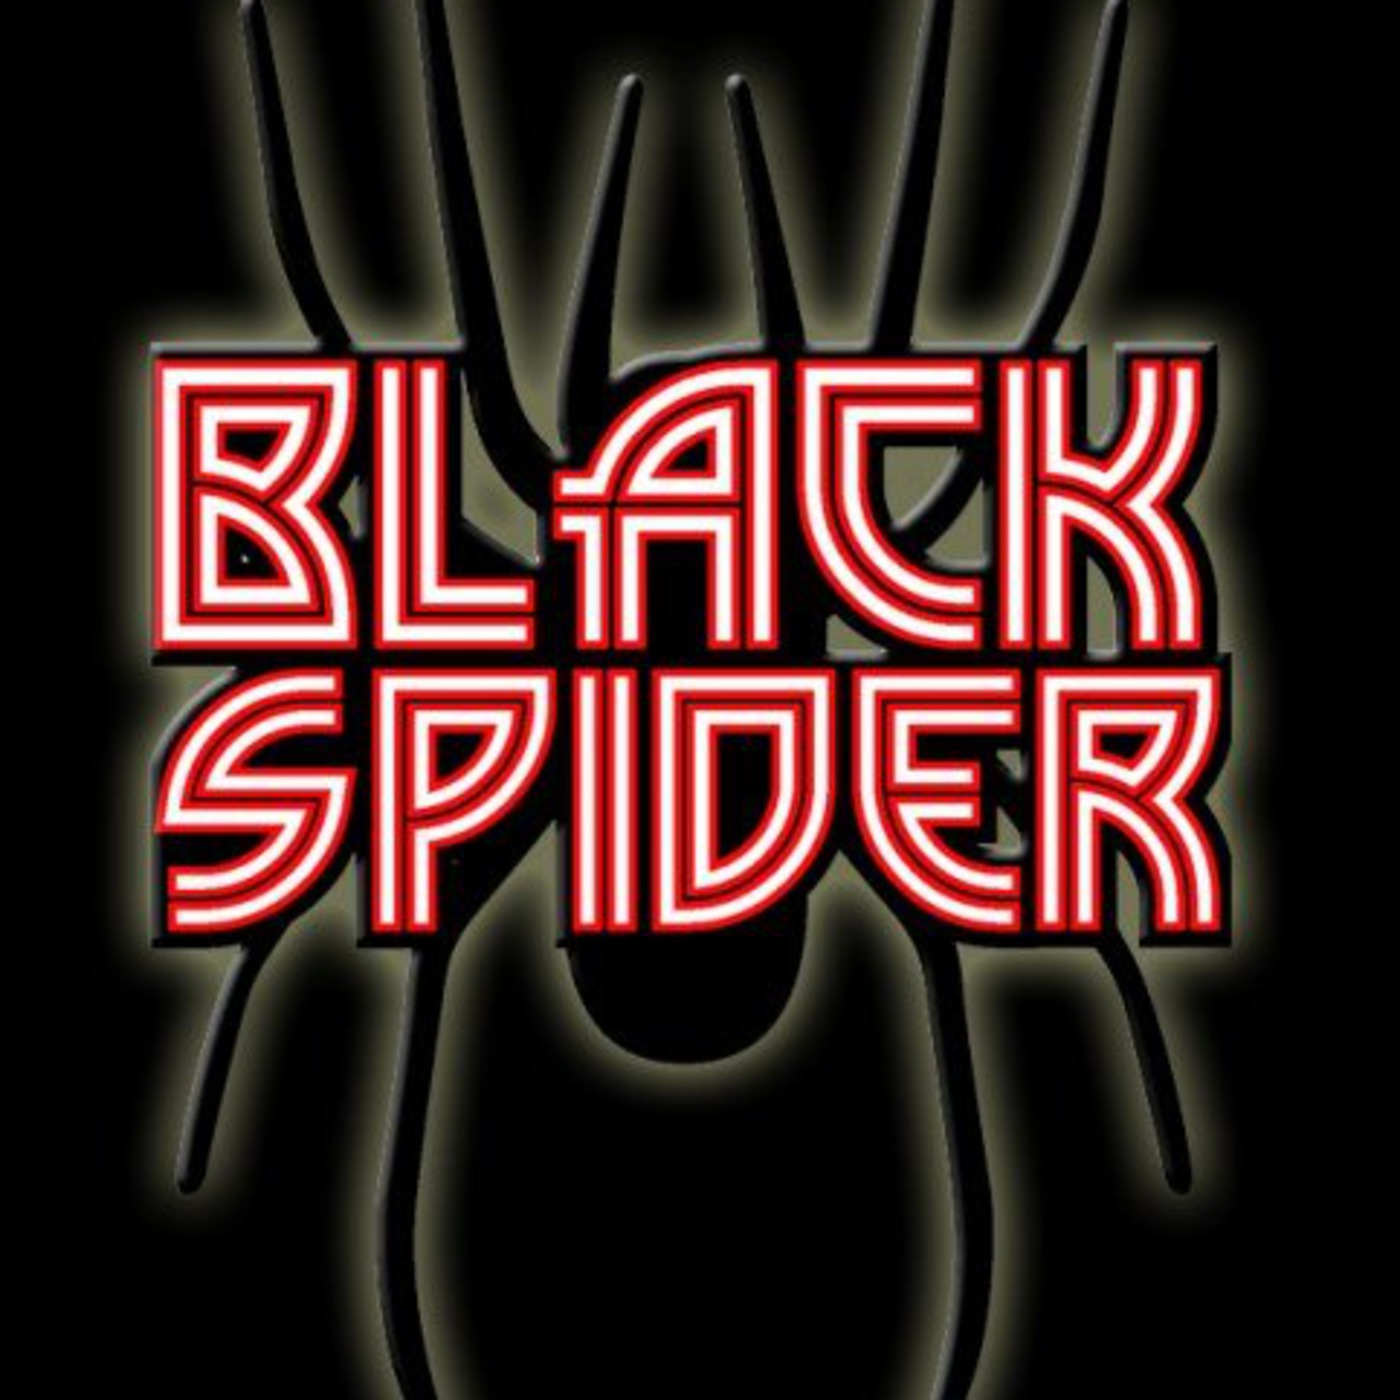 Dj Black Spider's Podcast